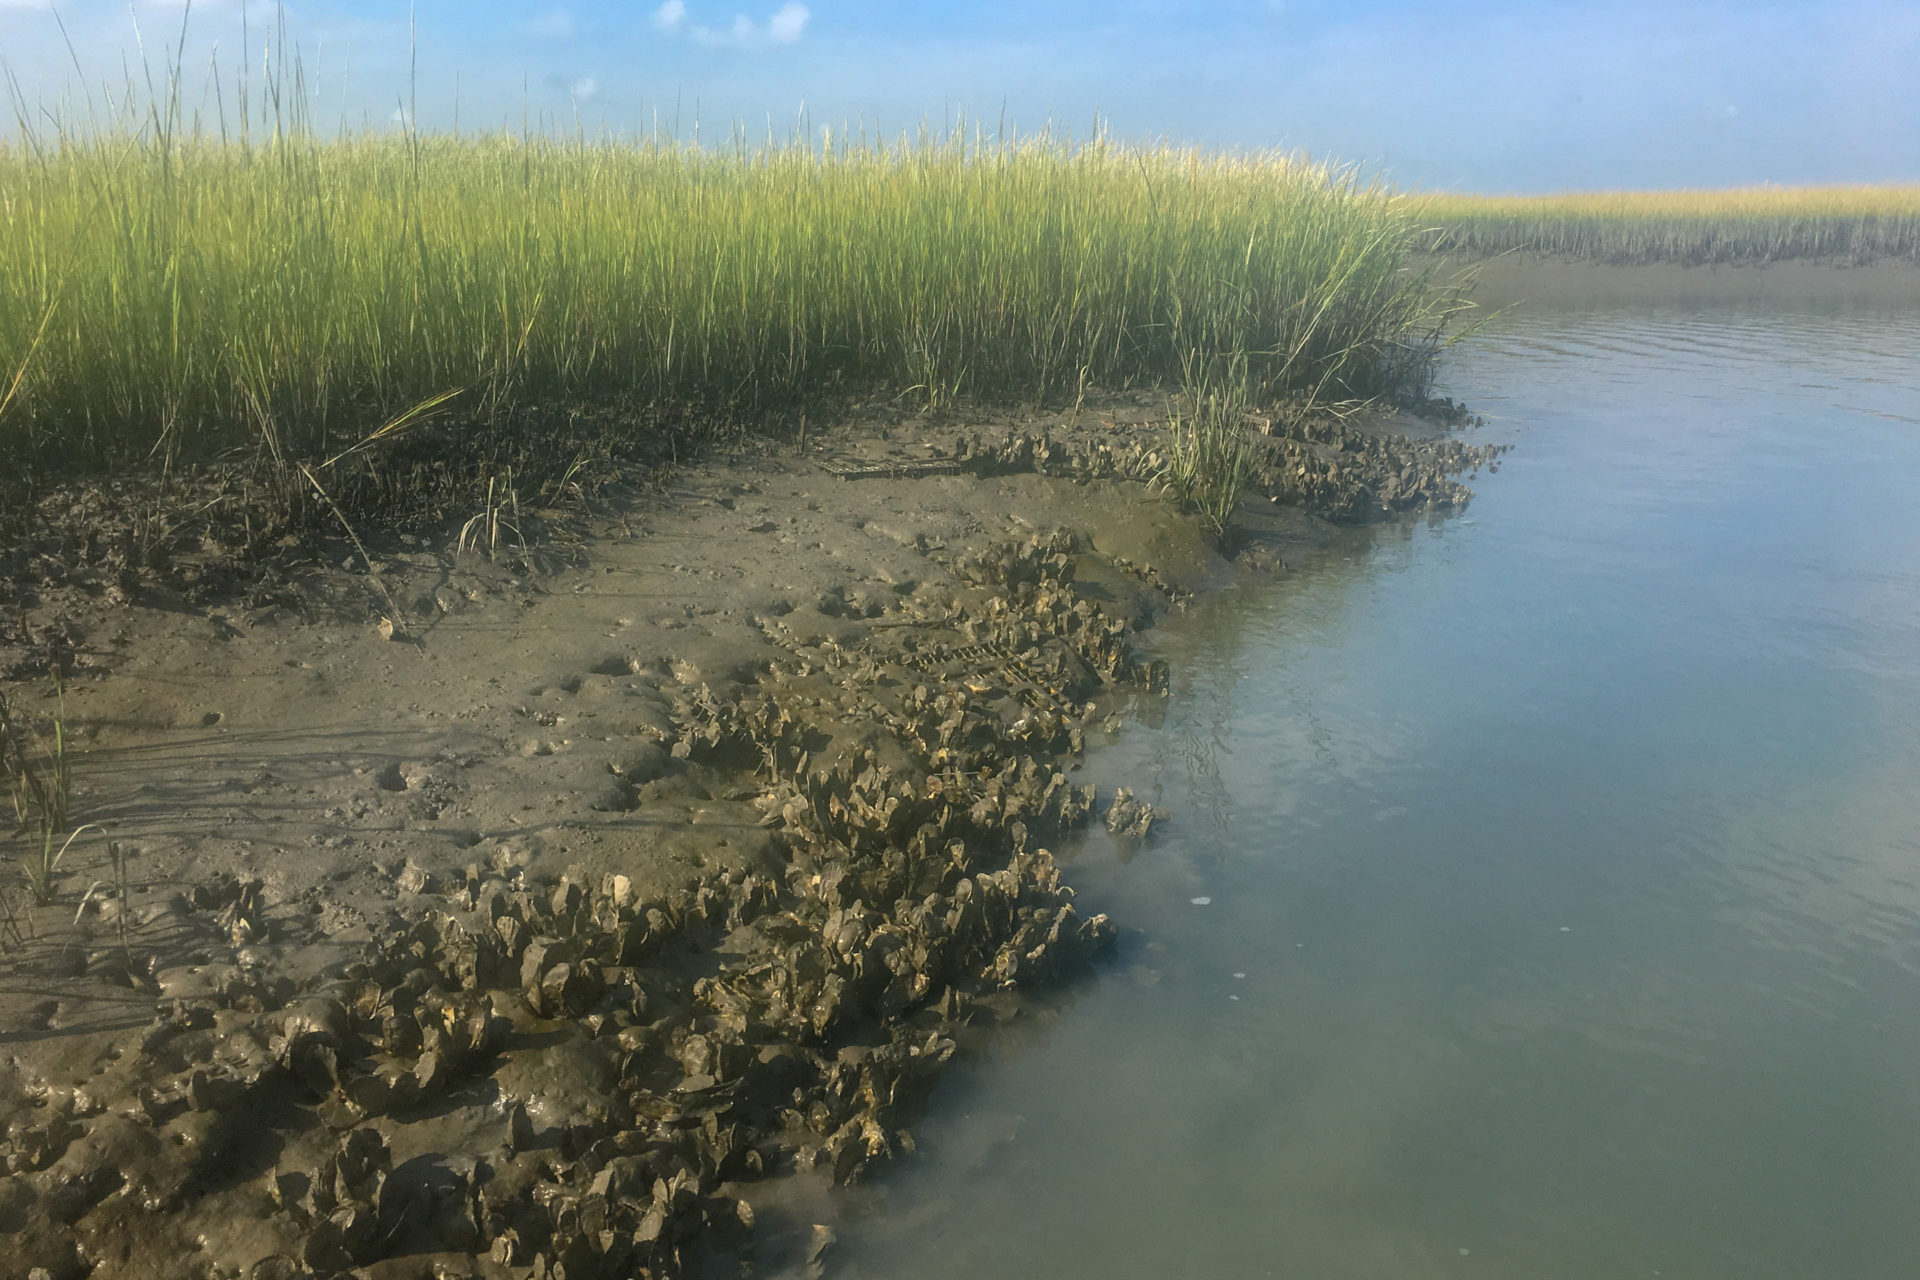 Wild oysters thrive in the muddy marshes on the Eastern Shore of Virginia.